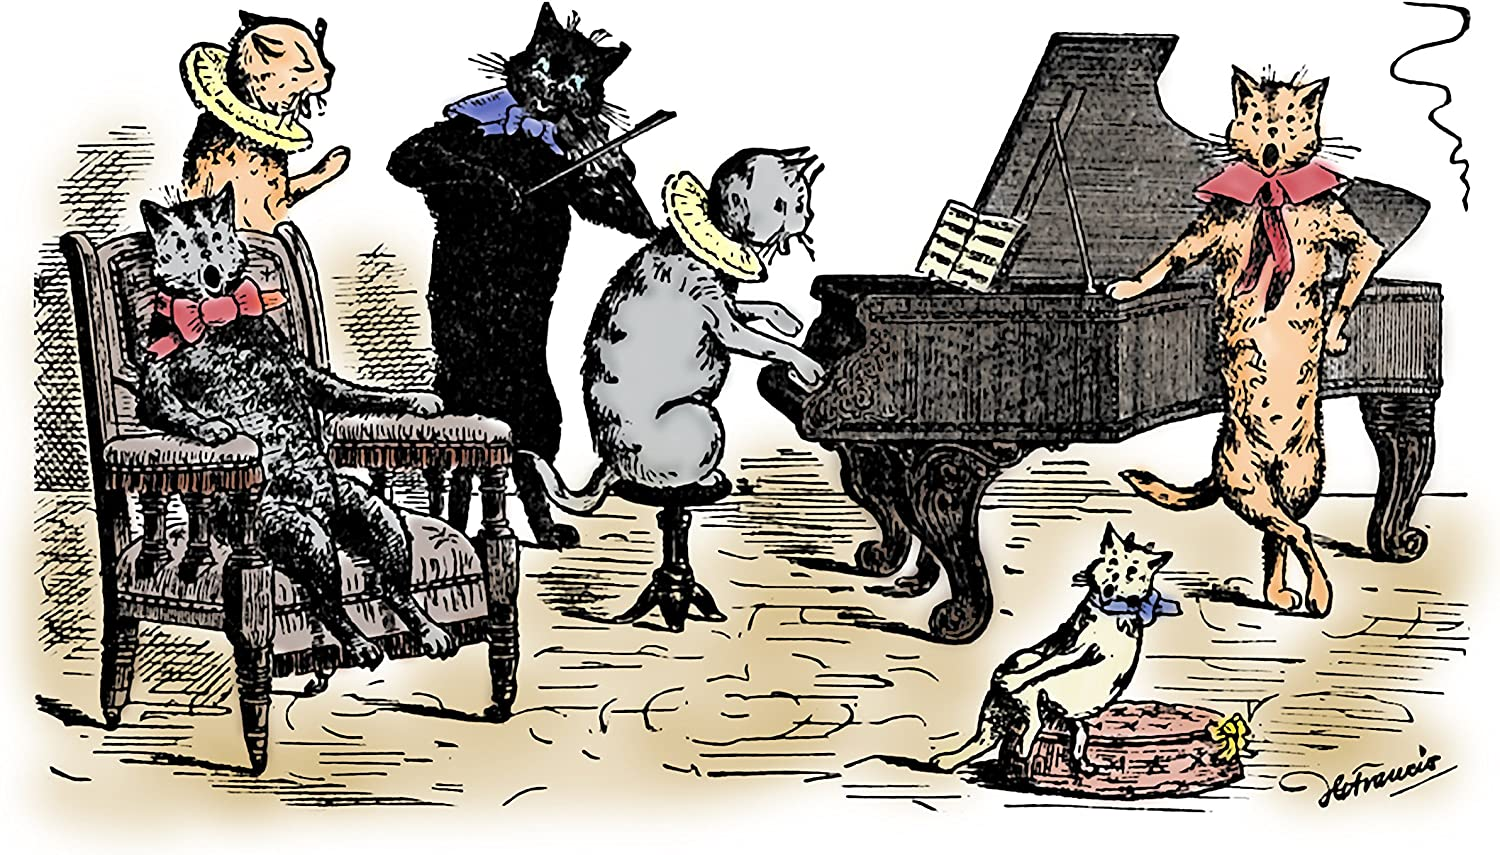 Amazon Com 8x10 Fine Art Print Singing Cats A Victorian Era Fine Art Color Print From The Cheerful Cats Perfect For A Children S Room Or Nursery Room Size 8x10 Inches Posters Prints